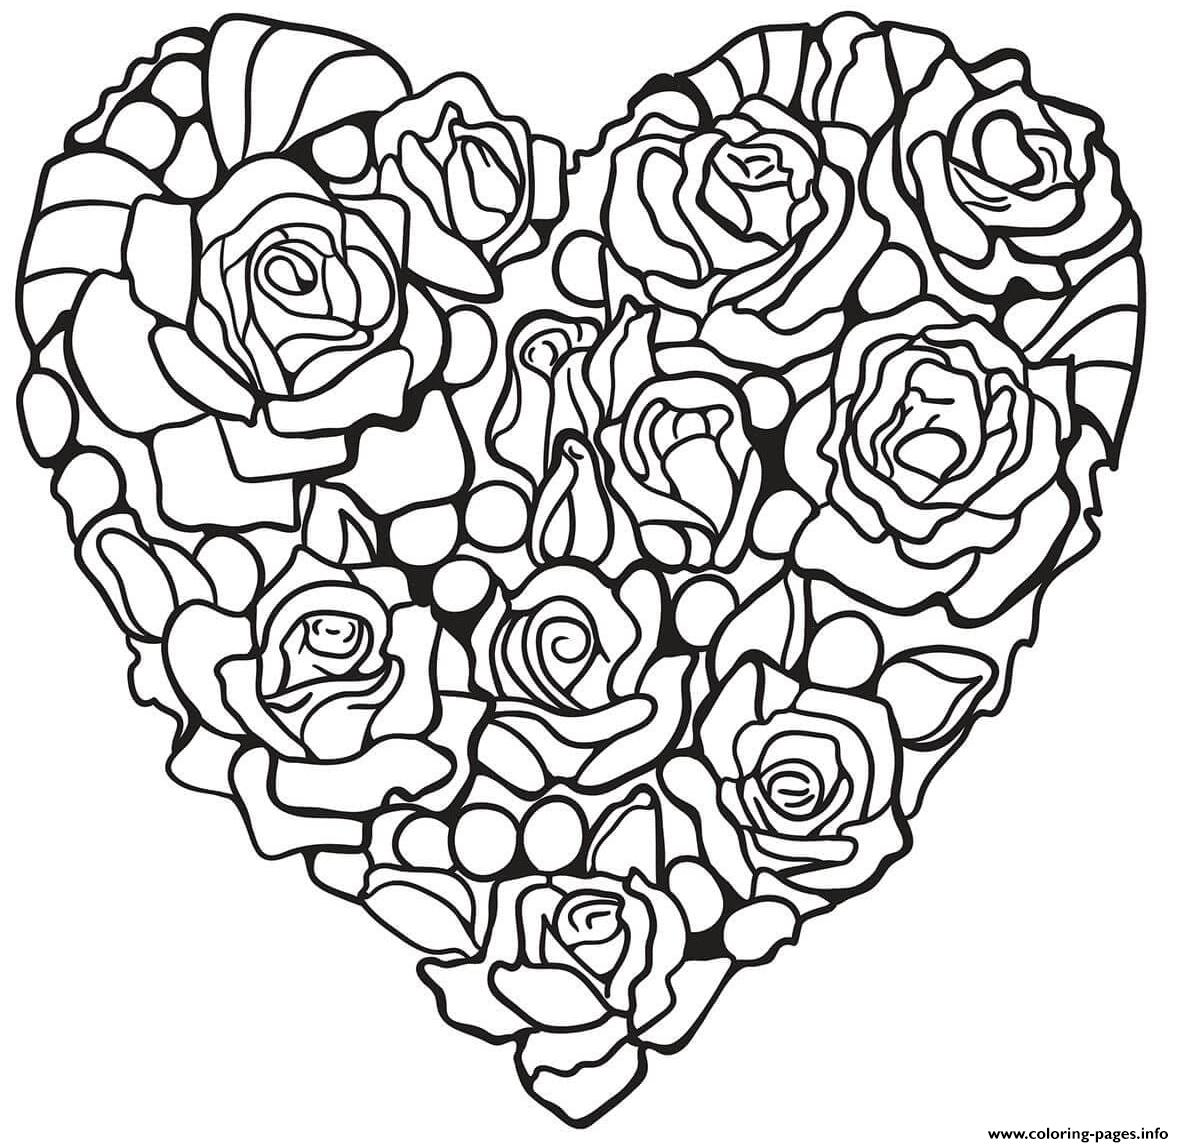 Rosa Hear By Flowers And Roses coloring pages